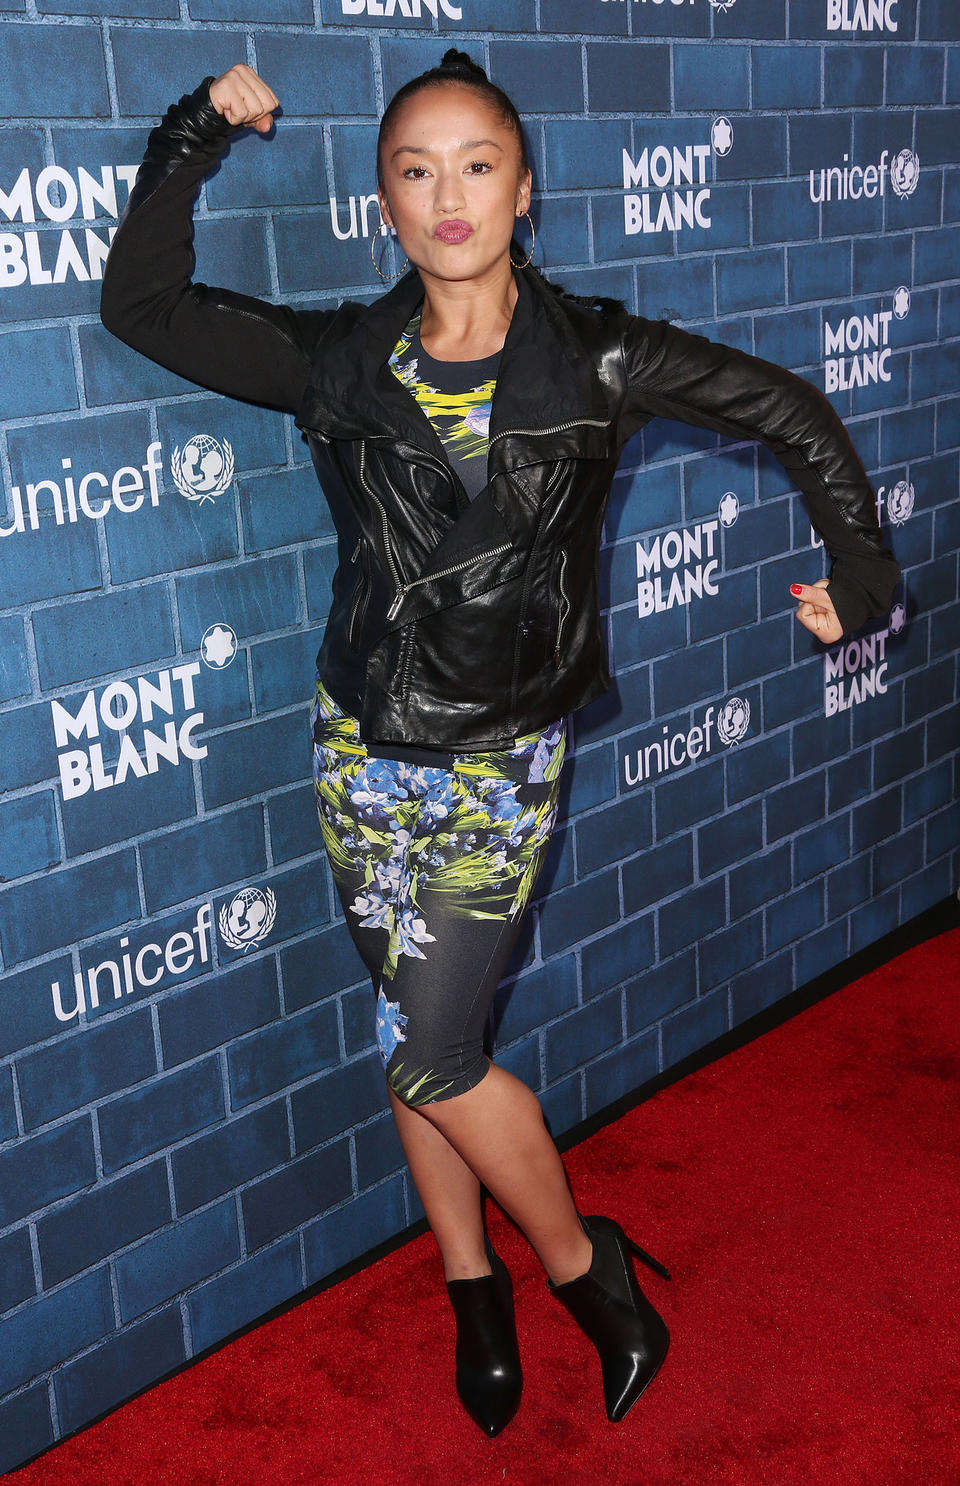 Nicole Winhoffer attends the Montblanc And UNICEF Host Pre-Oscar  Brunch Celebrating Their Limited Edition Collection at the Hotel Bel-Air on February 23, 2013 in Los Angeles.